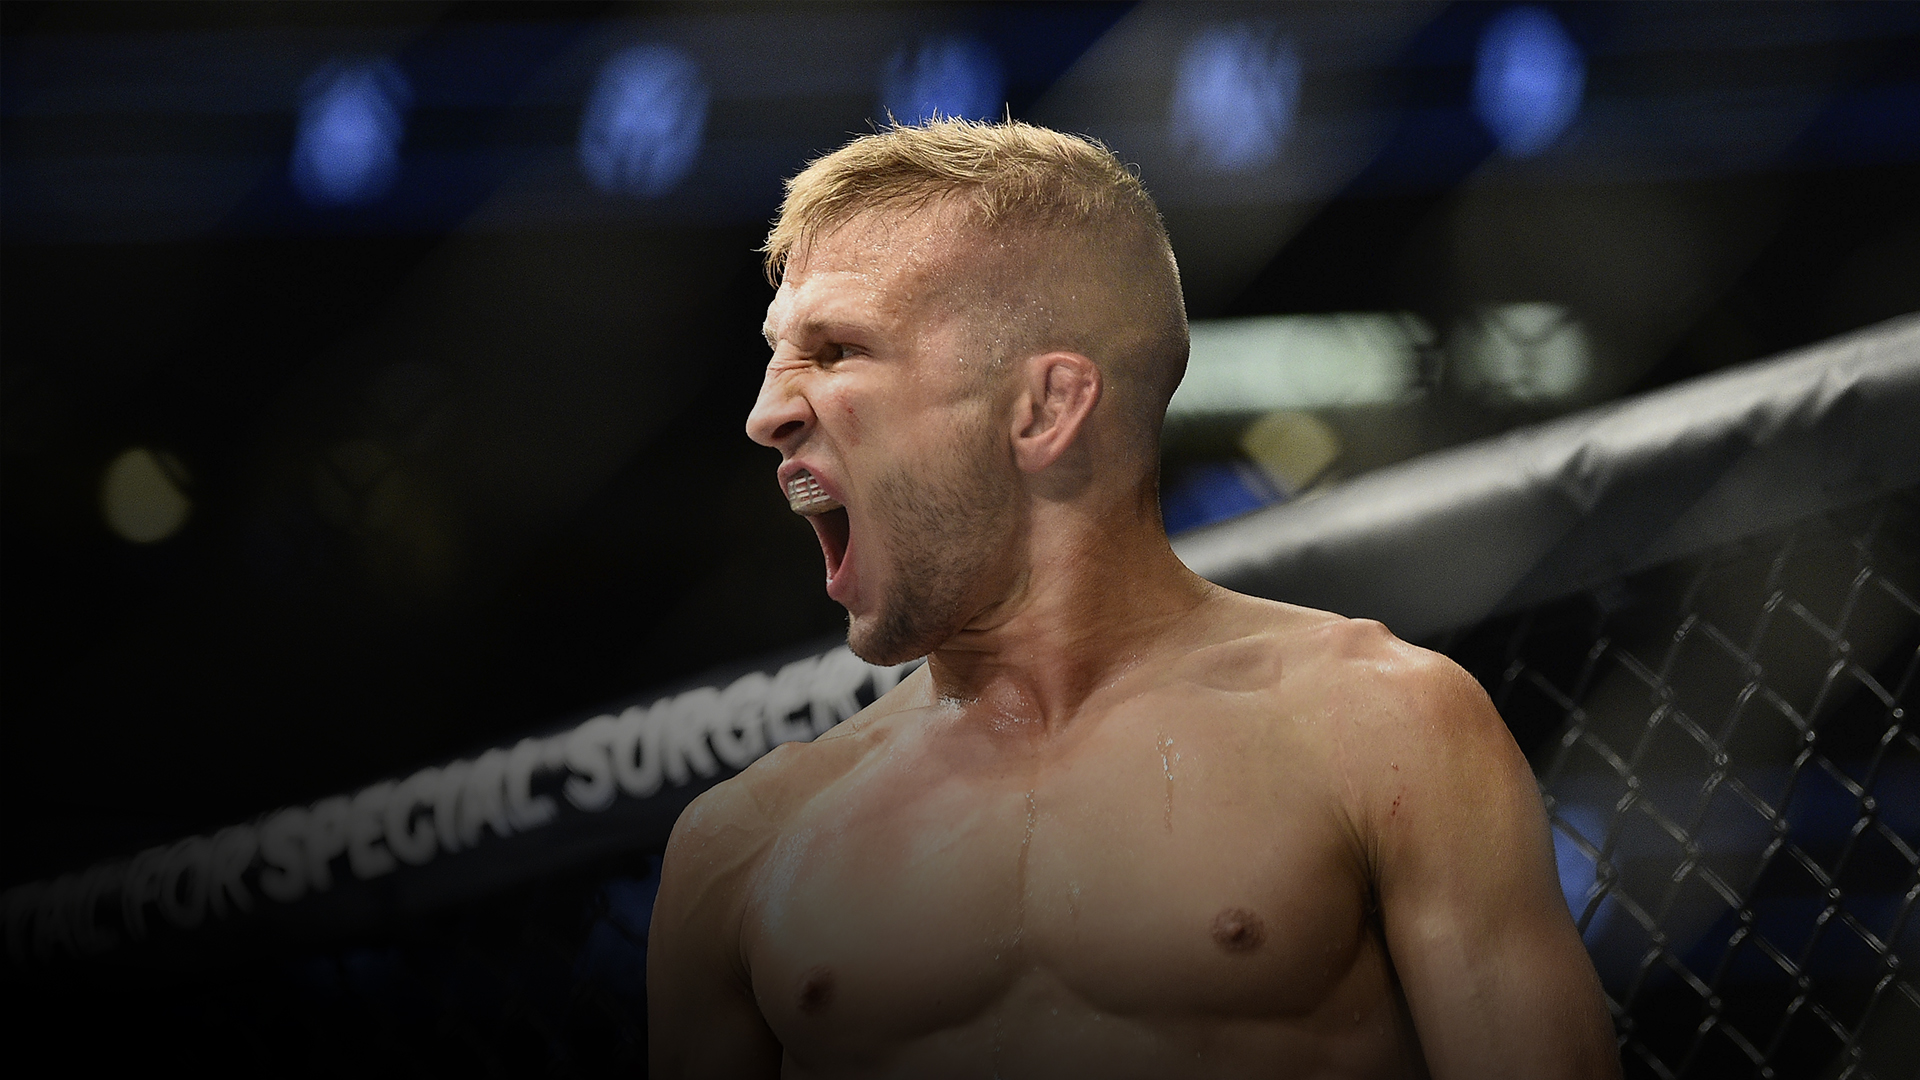 TJ Dillashaw reacts after defeating Cody Garbrandt in their UFC bantamweight championship bout during the UFC 217 event at Madison Square Garden on November 4, 2017 in New York City. (Photo by Jeff Bottari/Zuffa LLC)